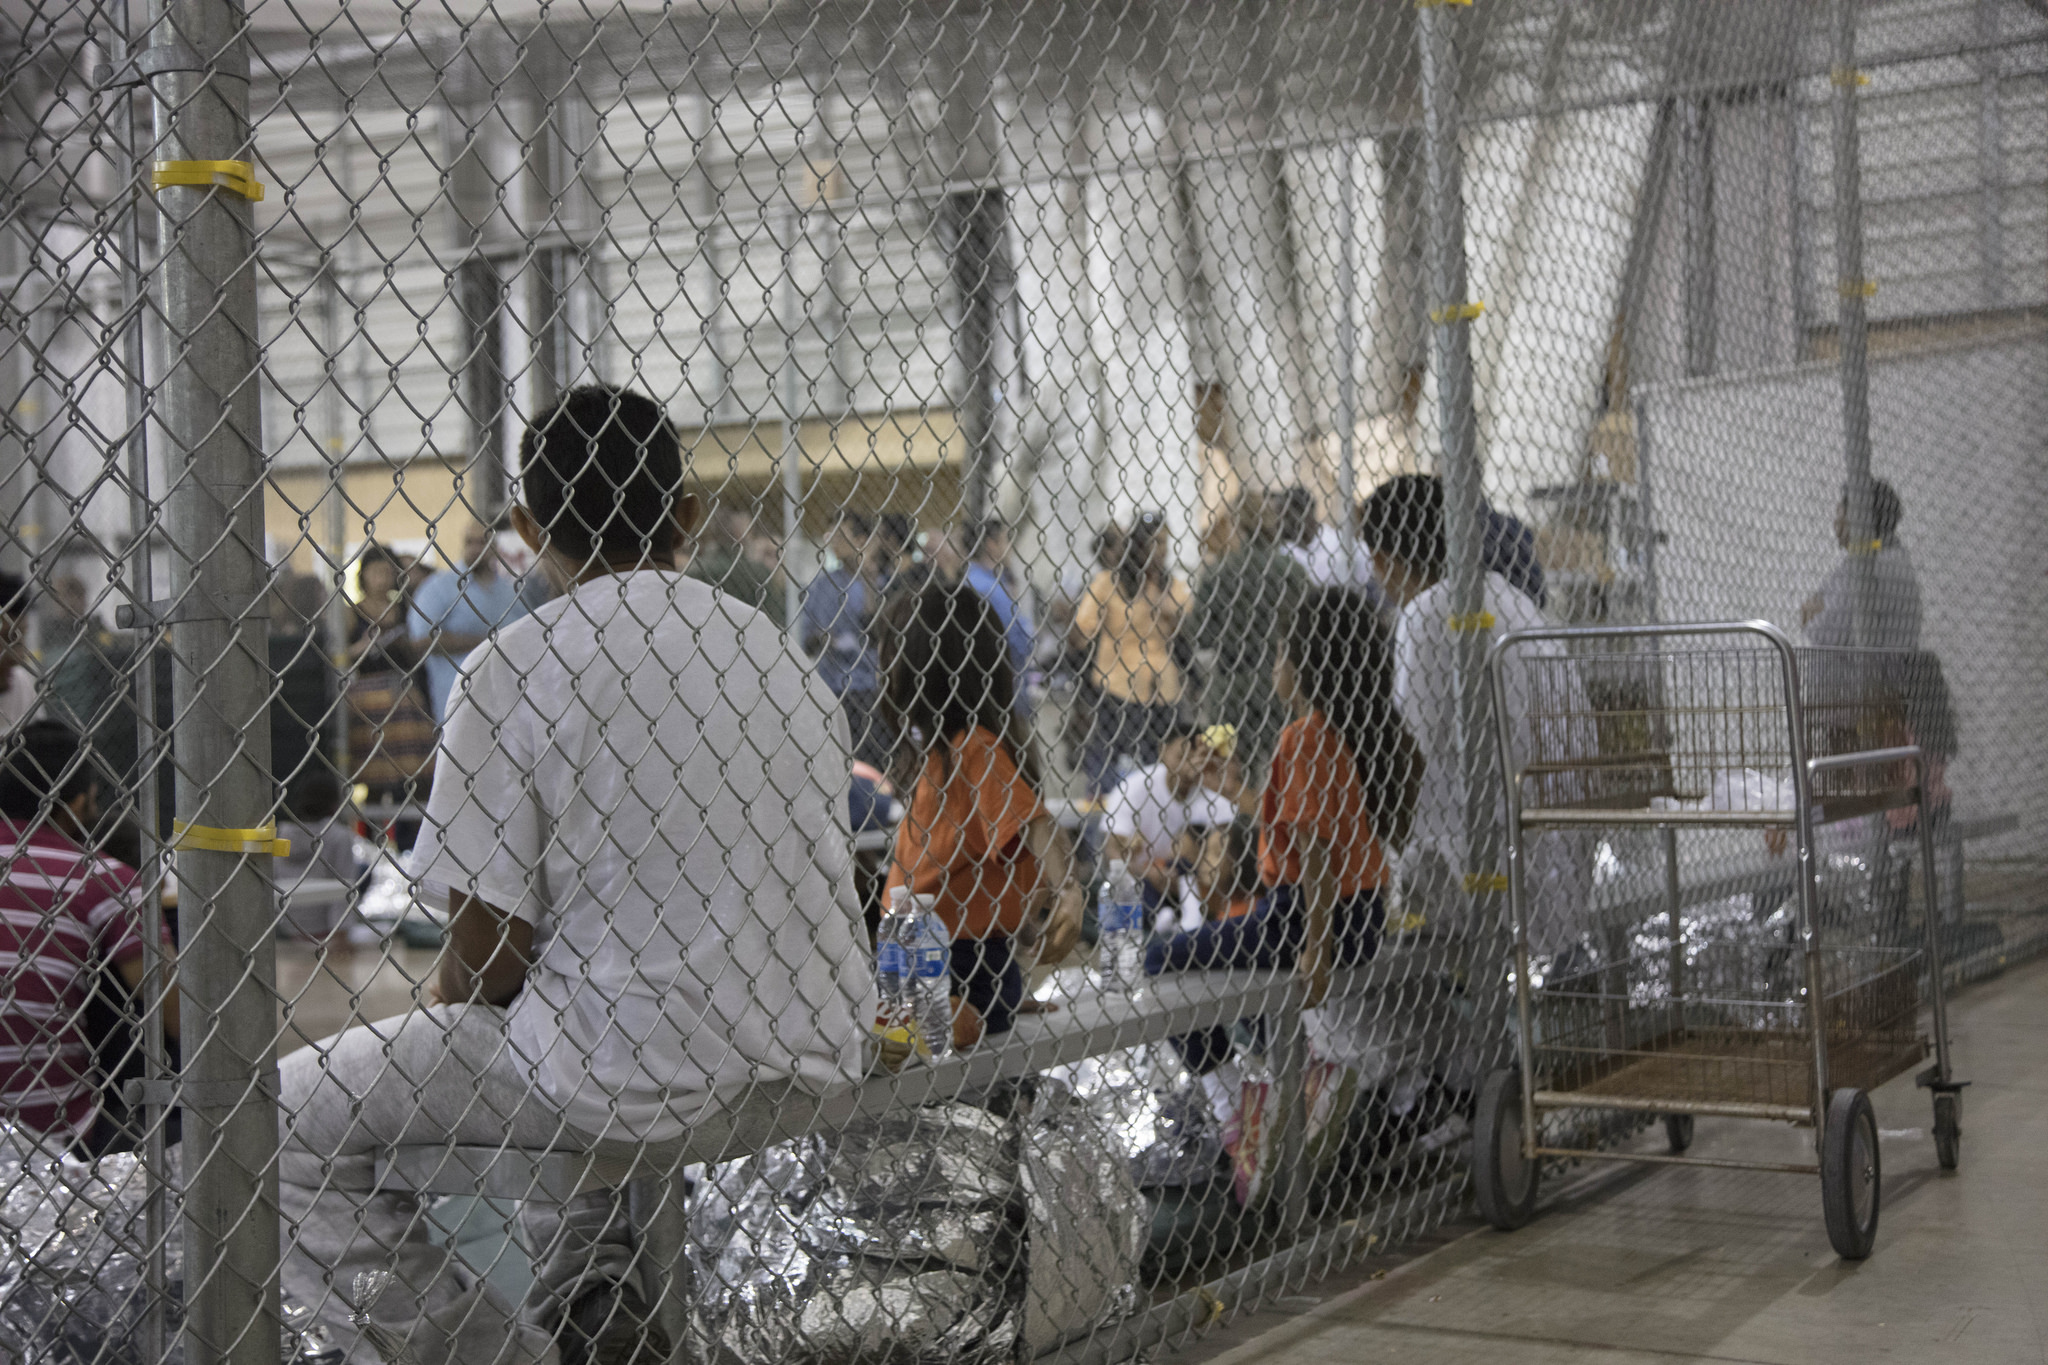 Trump Signs Order to Lock Up Children and Babies with